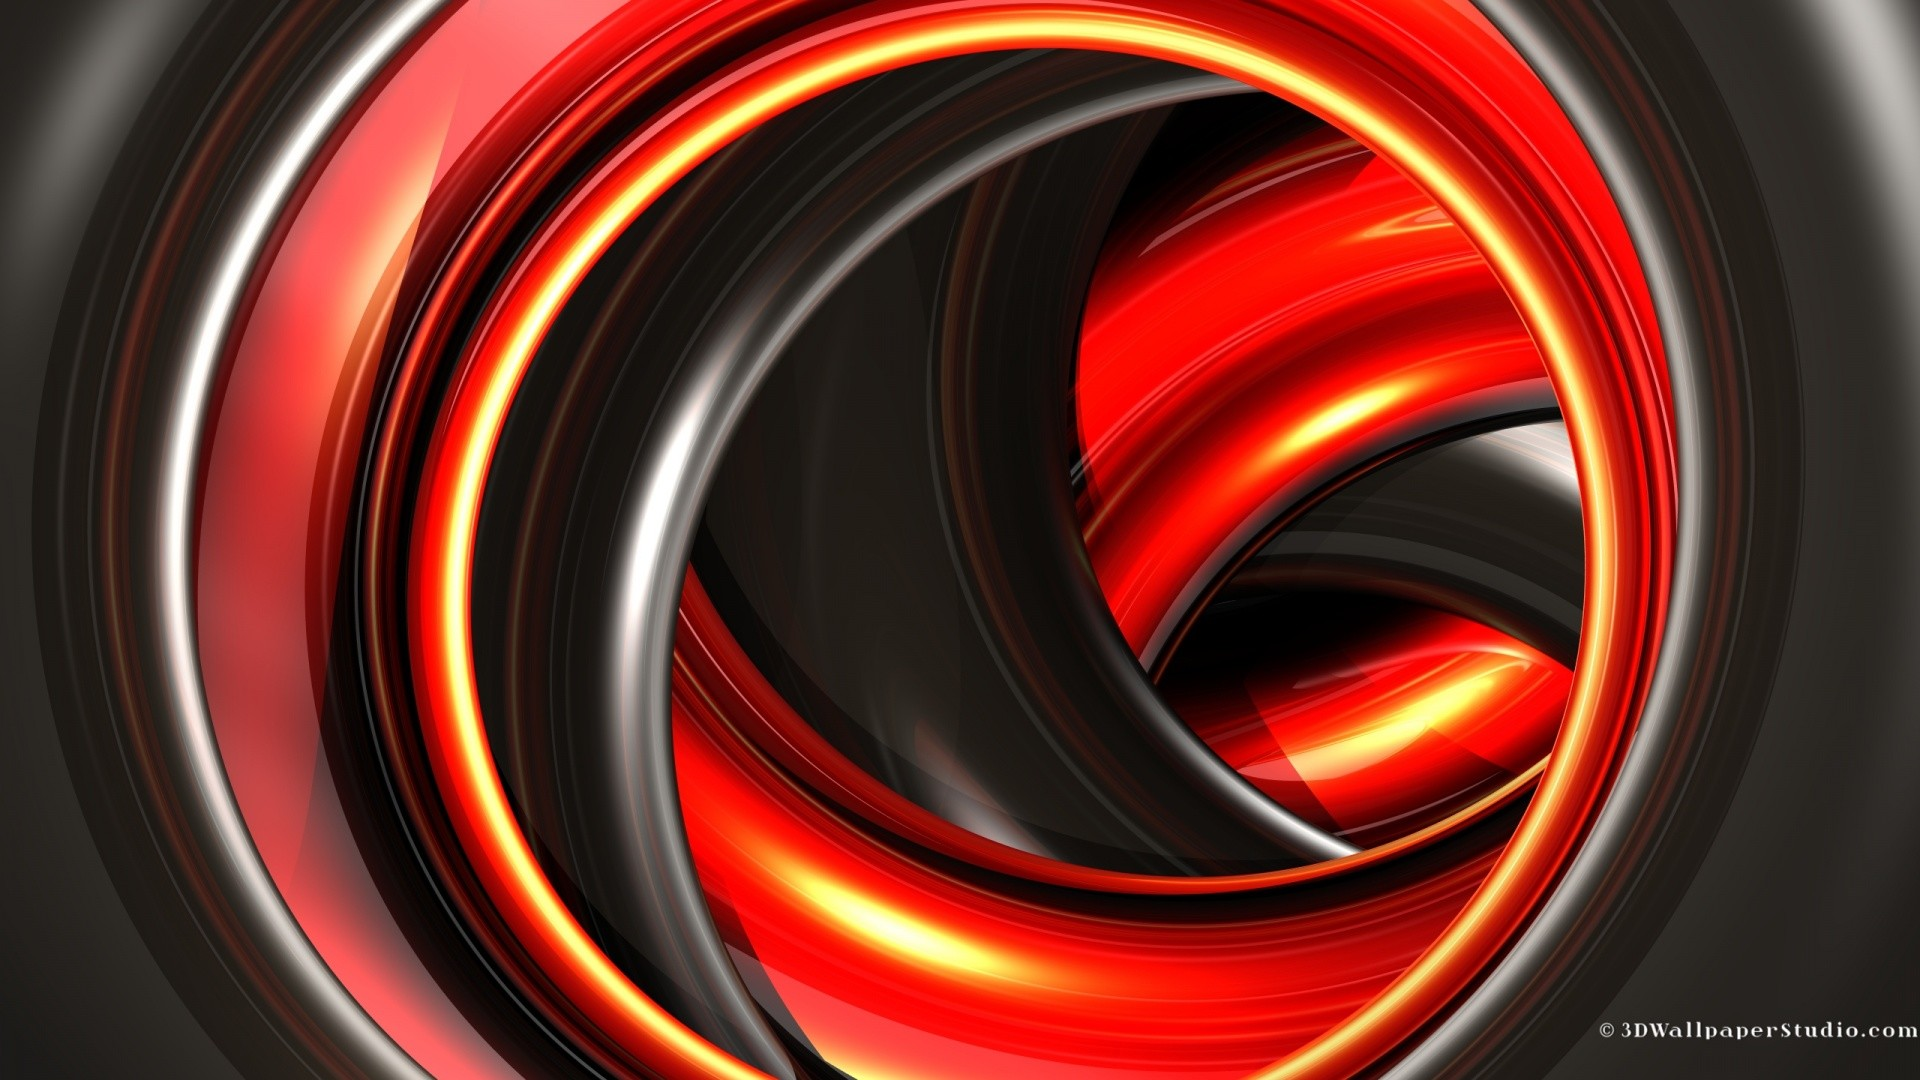 Black and red 3d abstract wallpaper in screen resolution